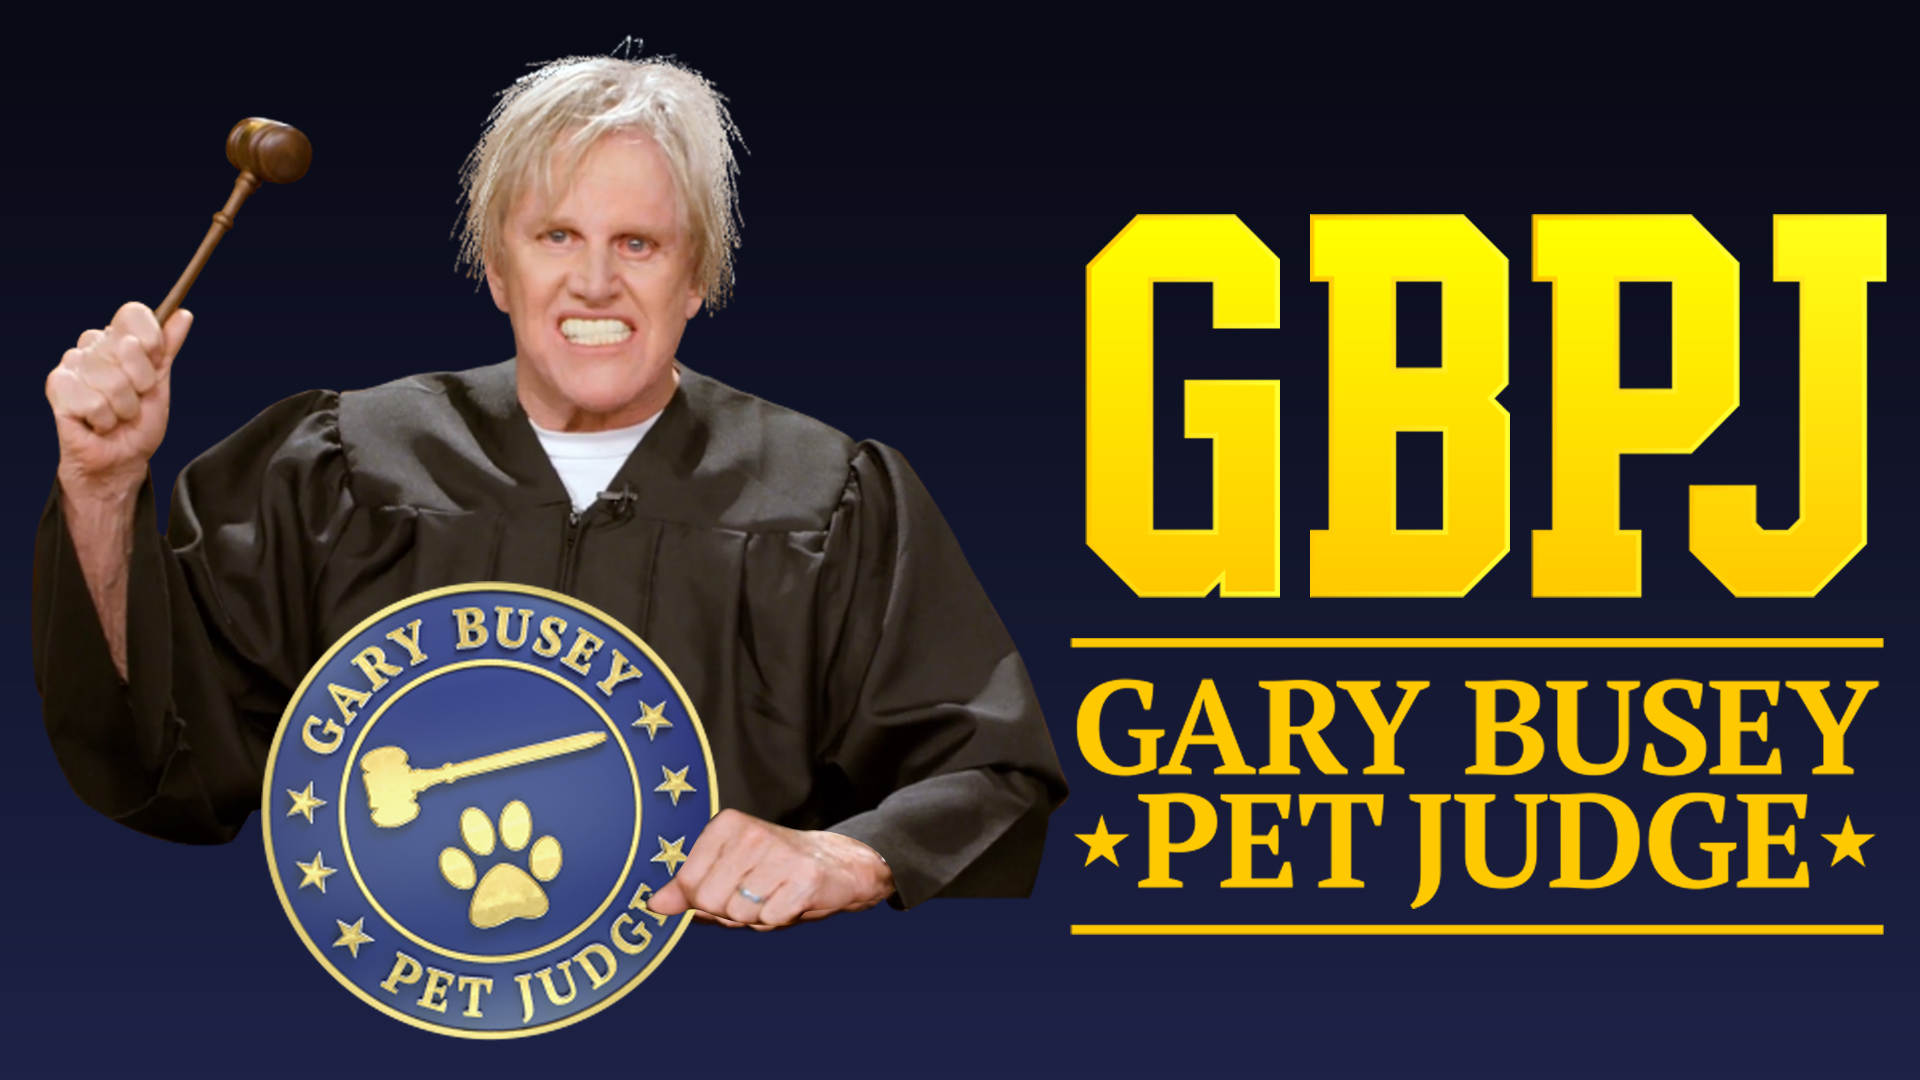 Gary Busey, Pet Judge